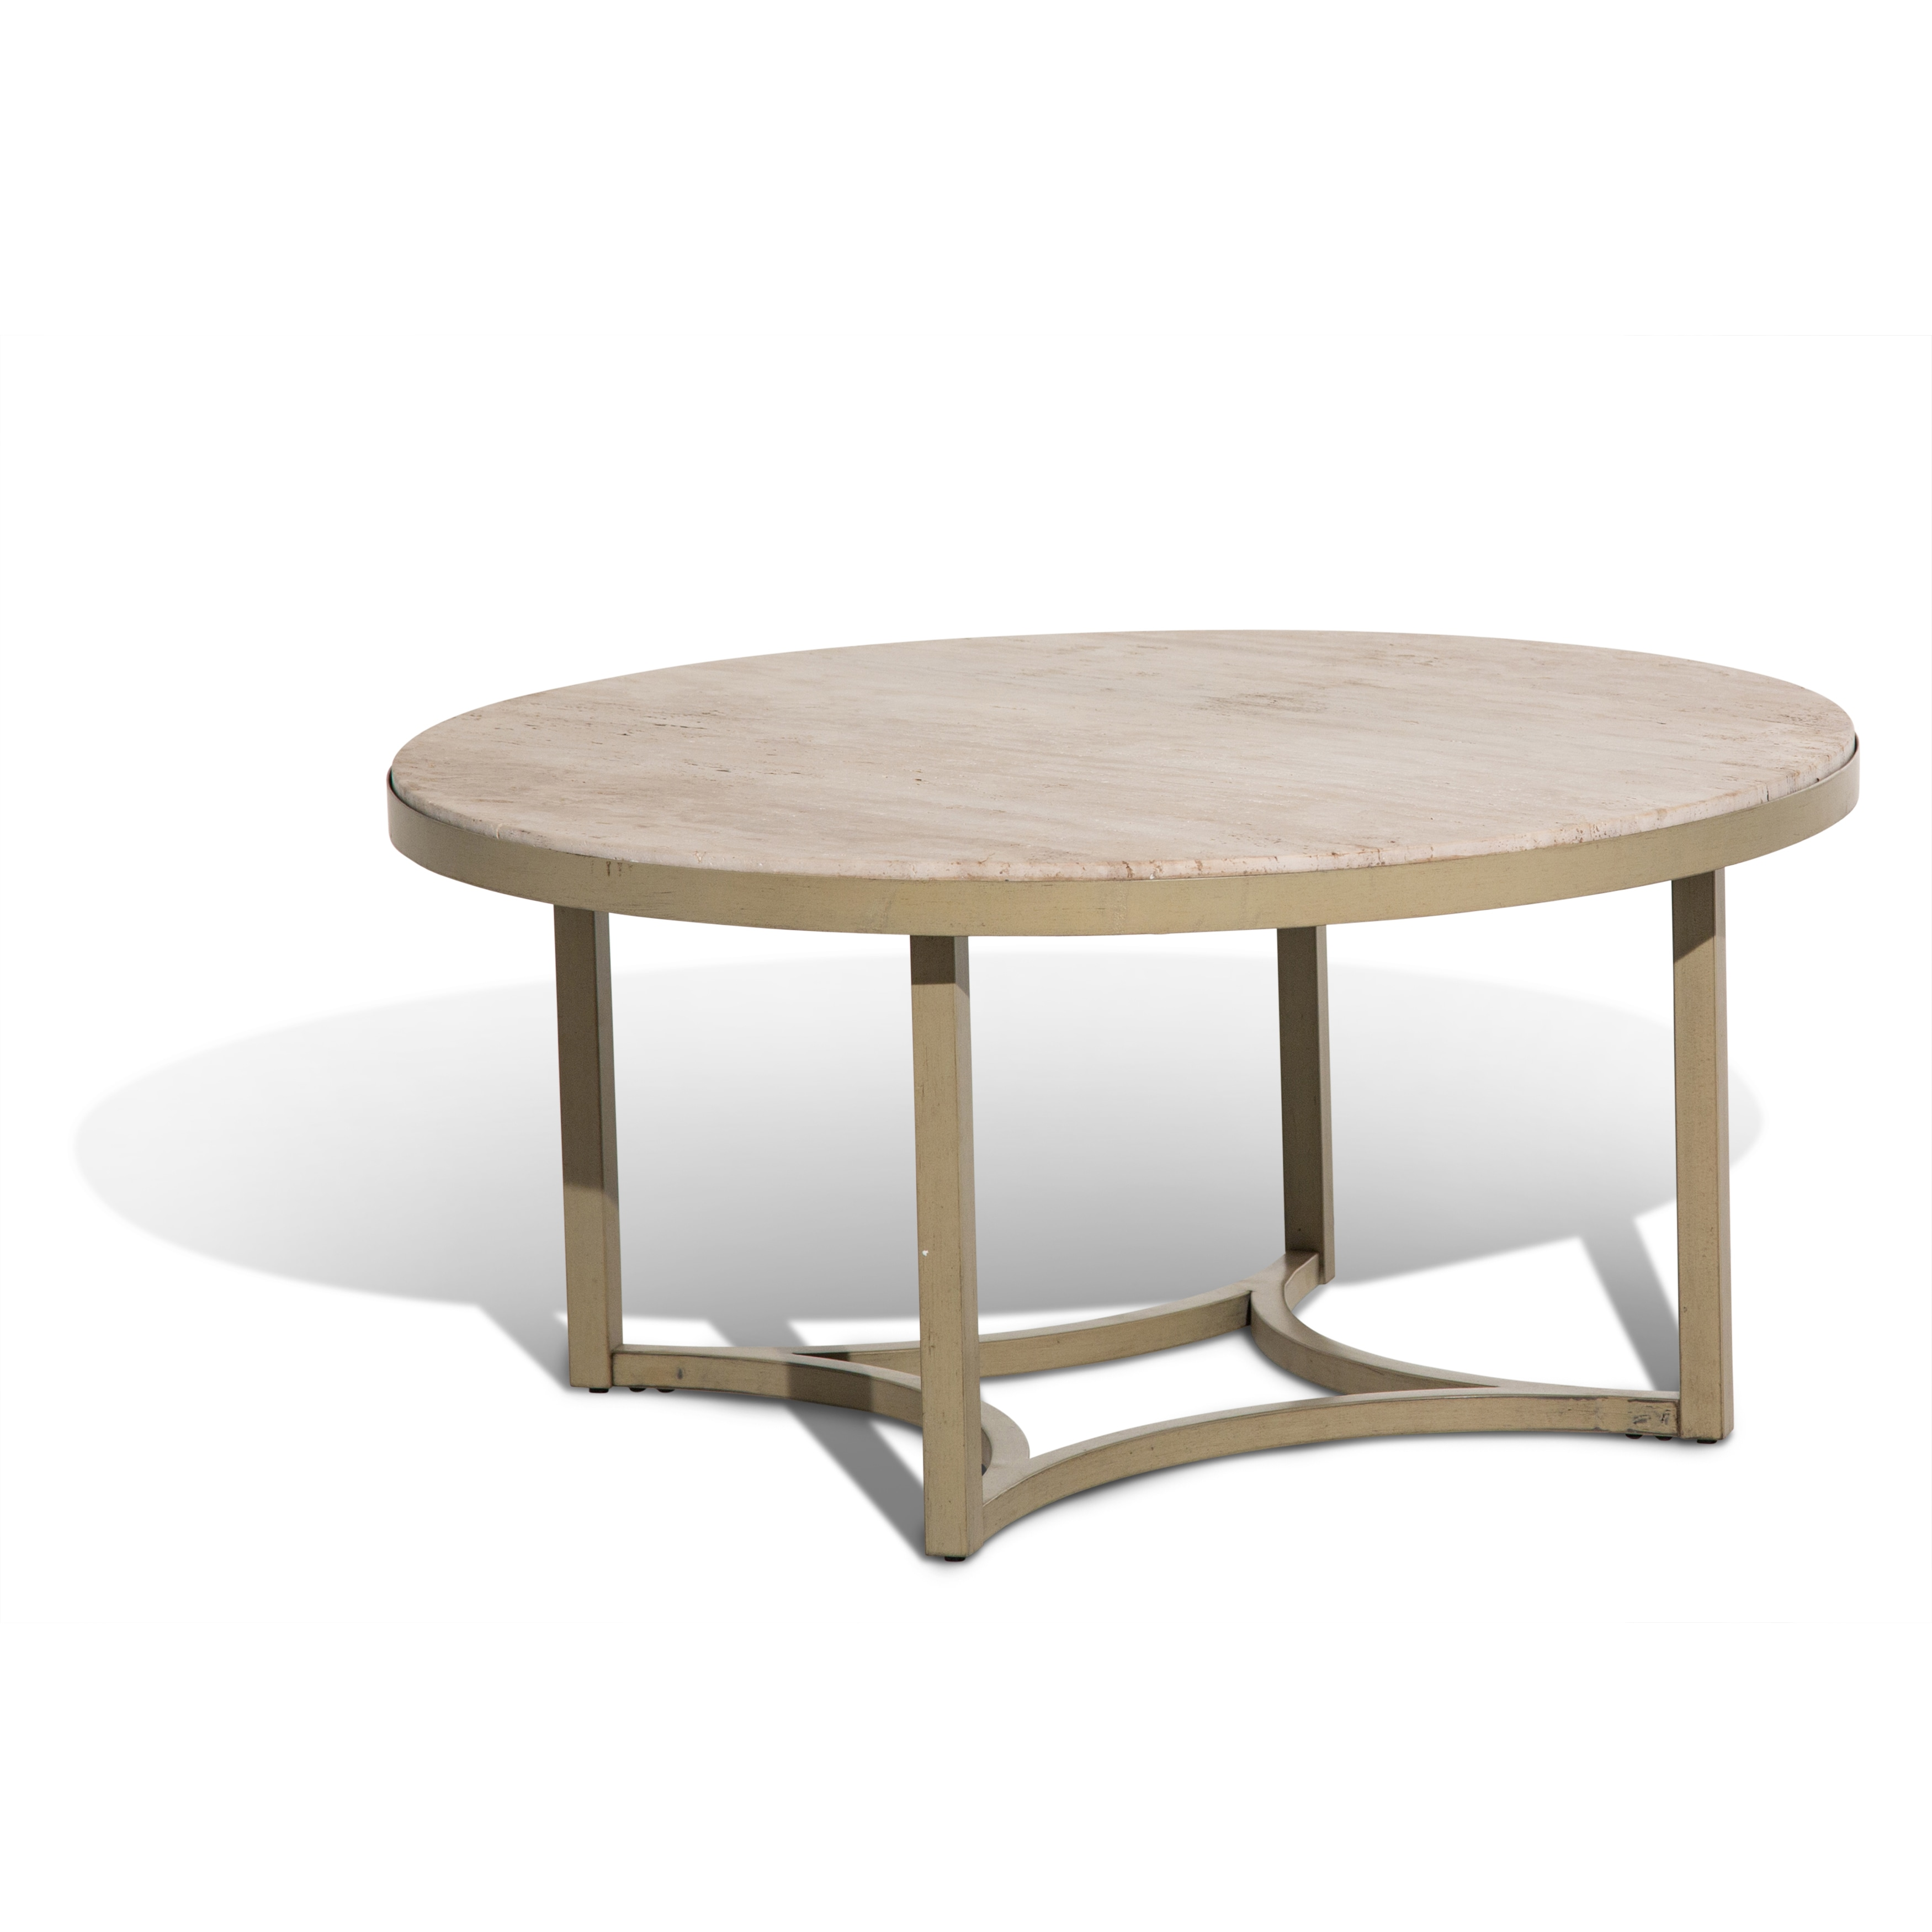 Shop Alta Round Cocktail Table W Travertine Marble Top Free